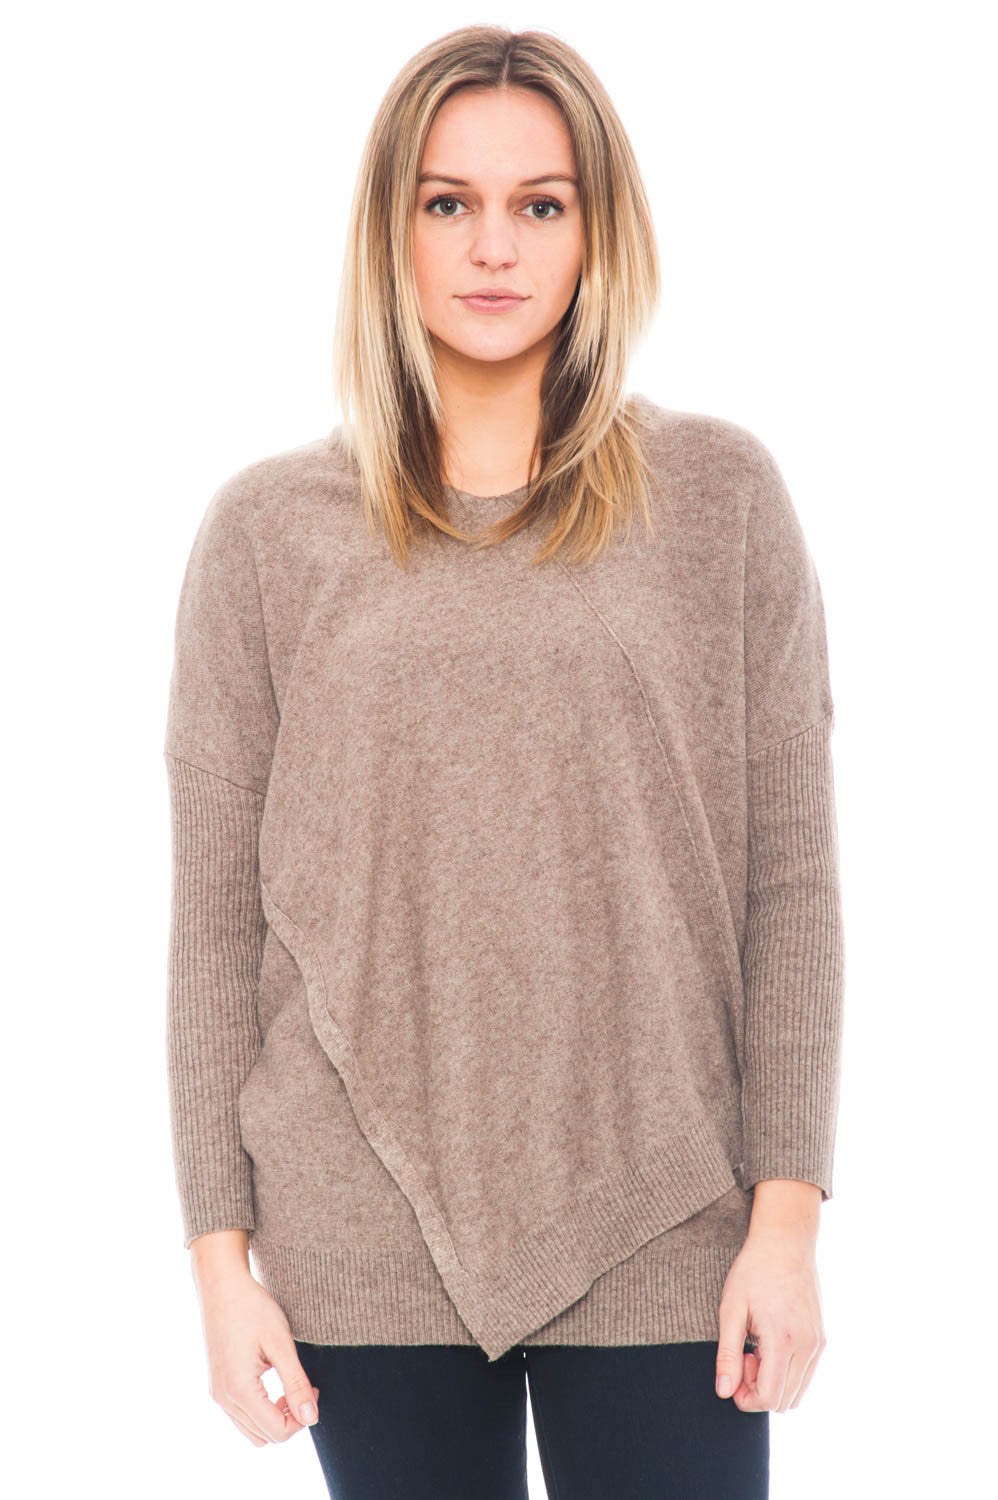 Sweater - Asymmetrical Cut Tunic with an Overlap Front